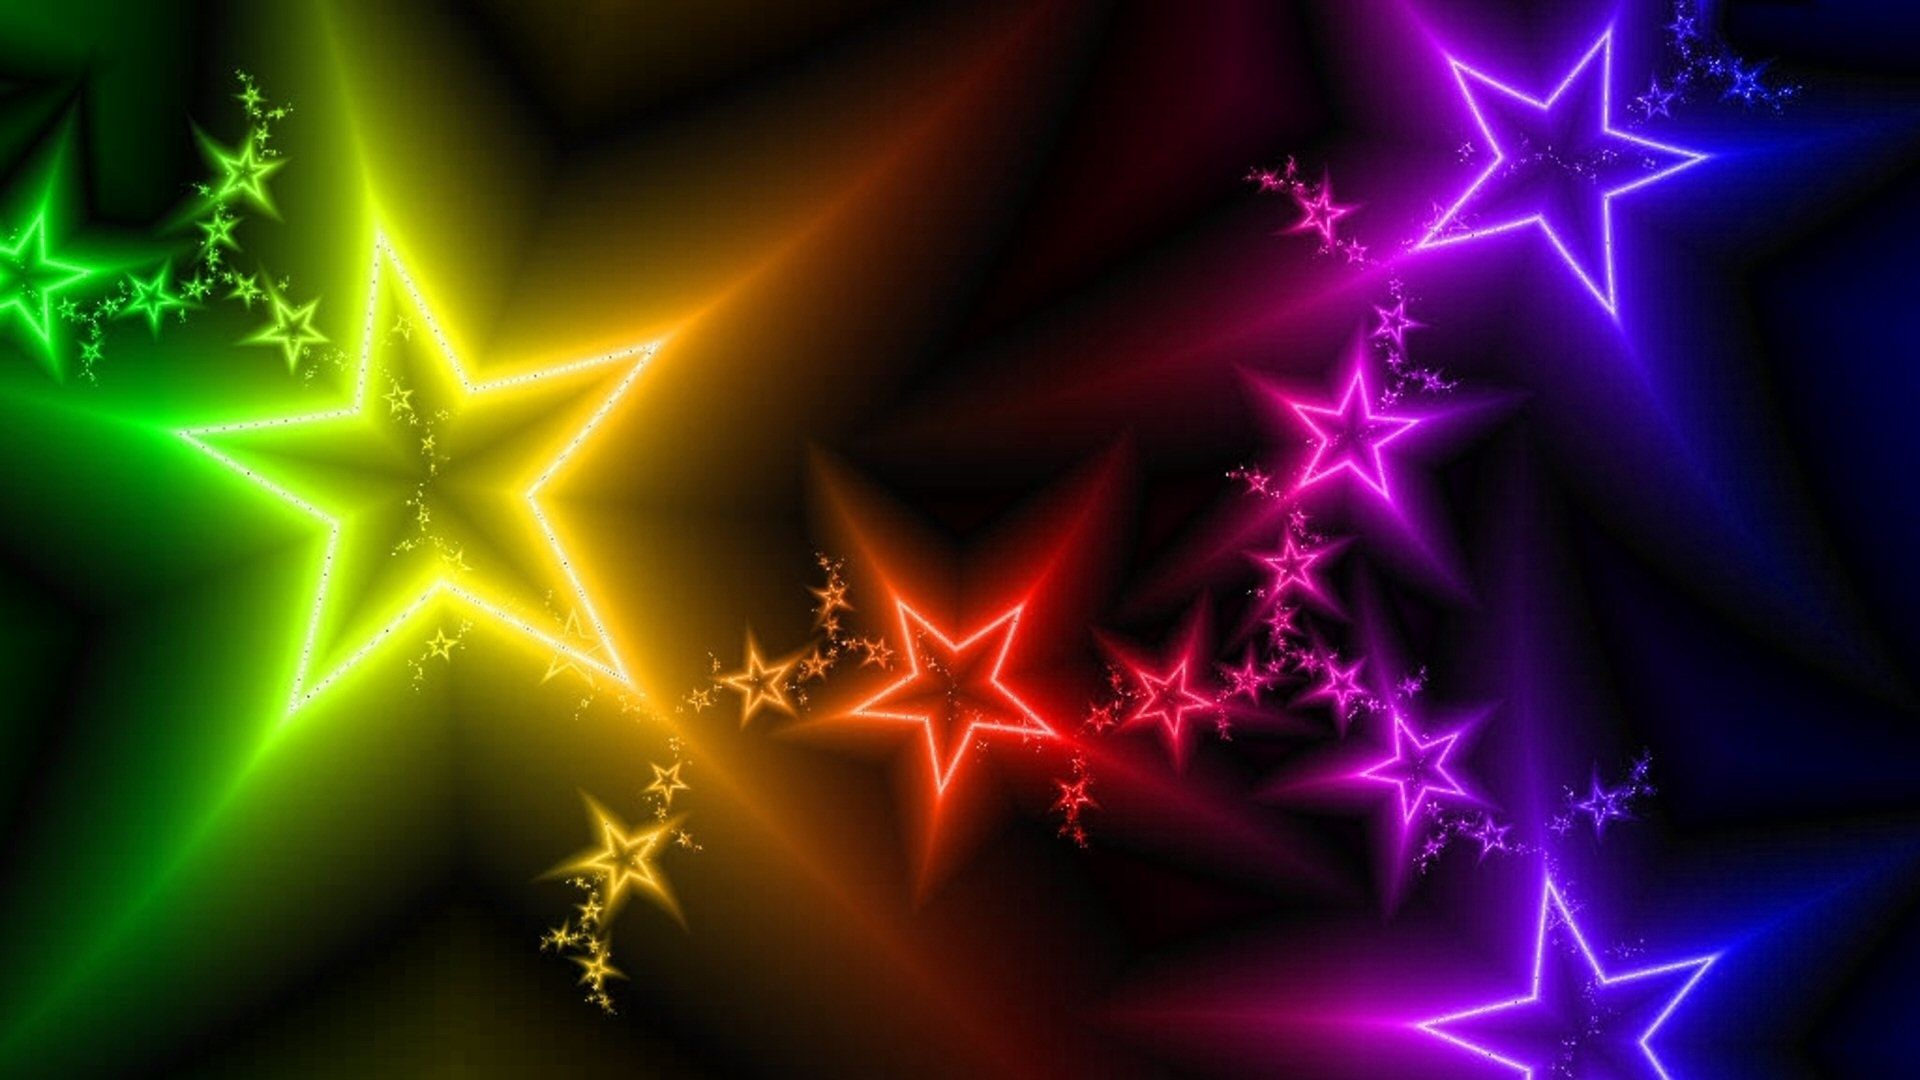 Wallpaper Original stars, light, colorful, abstract Background ...